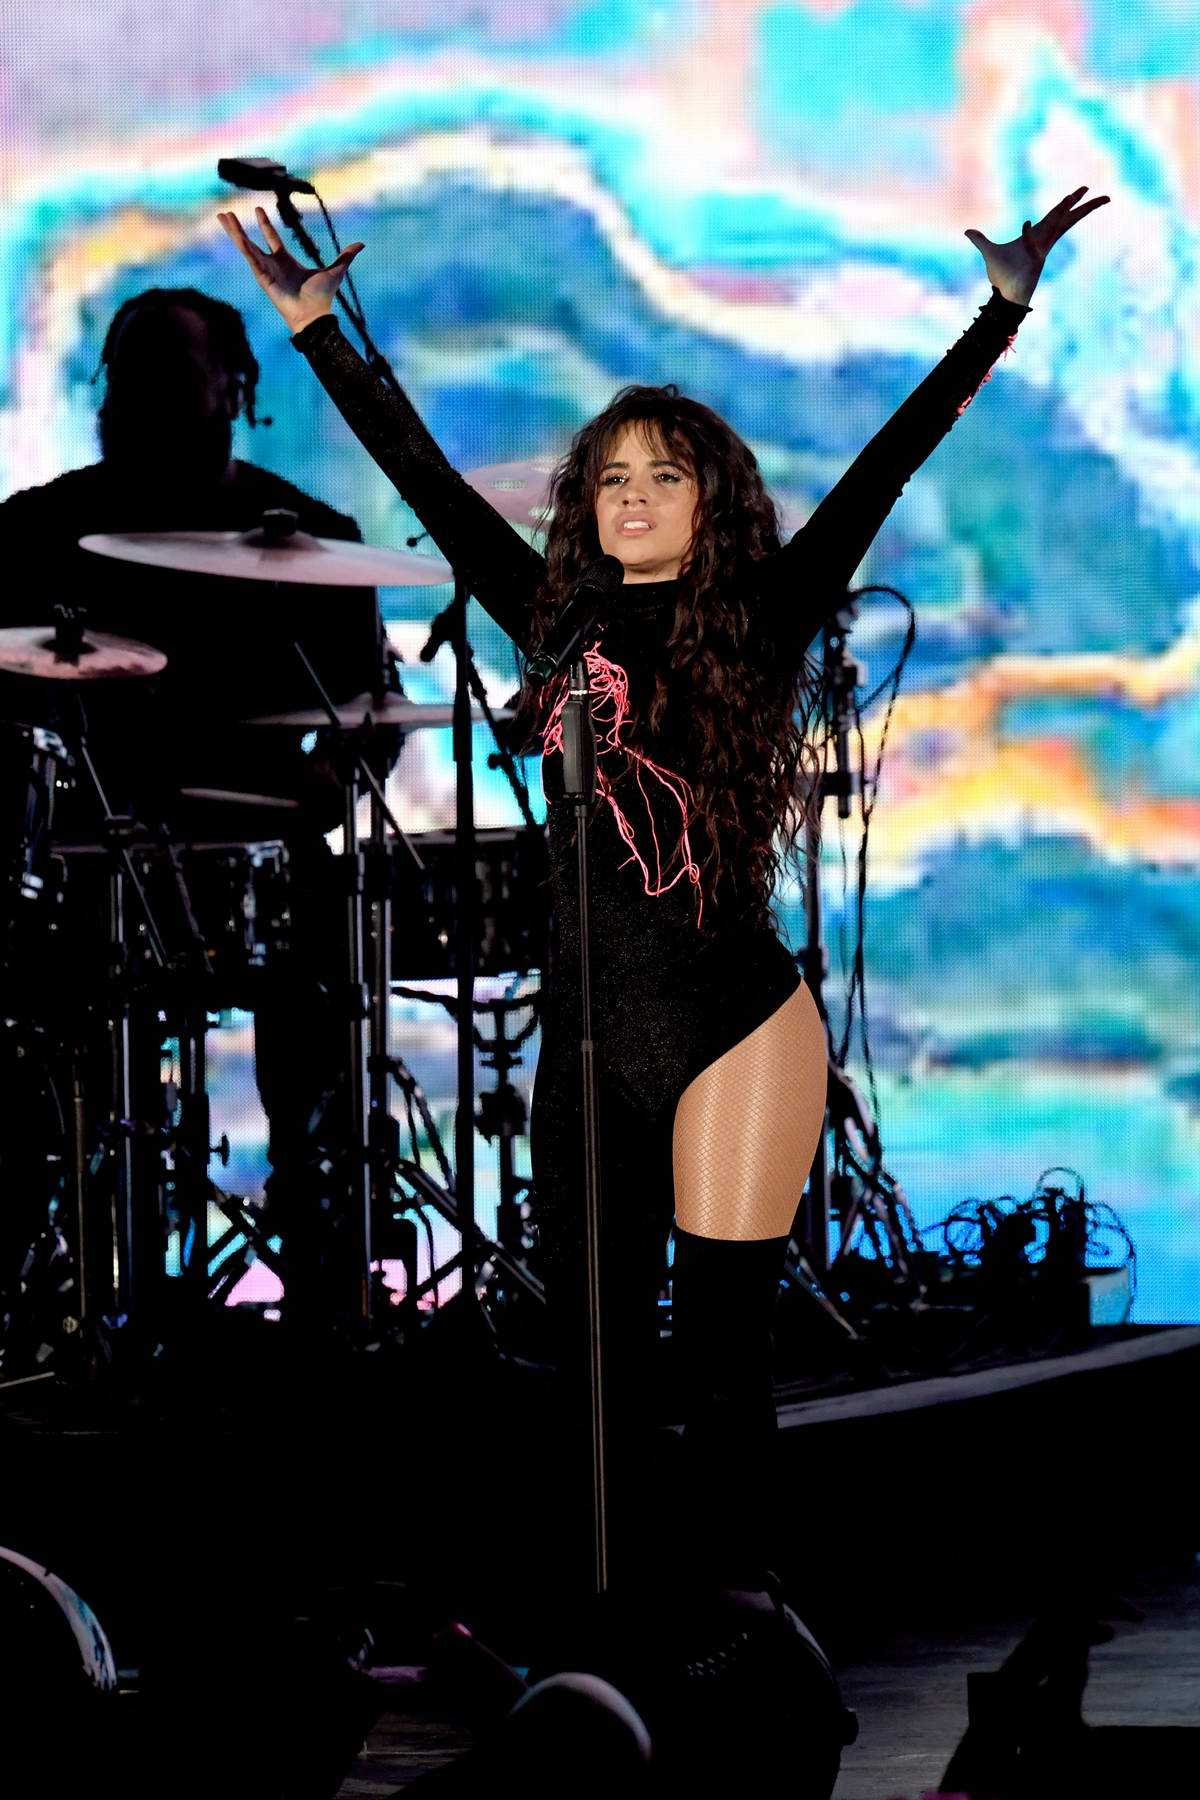 Camila Cabello performs live at AT&T's 'We Can Survive Concert' in Los Angeles